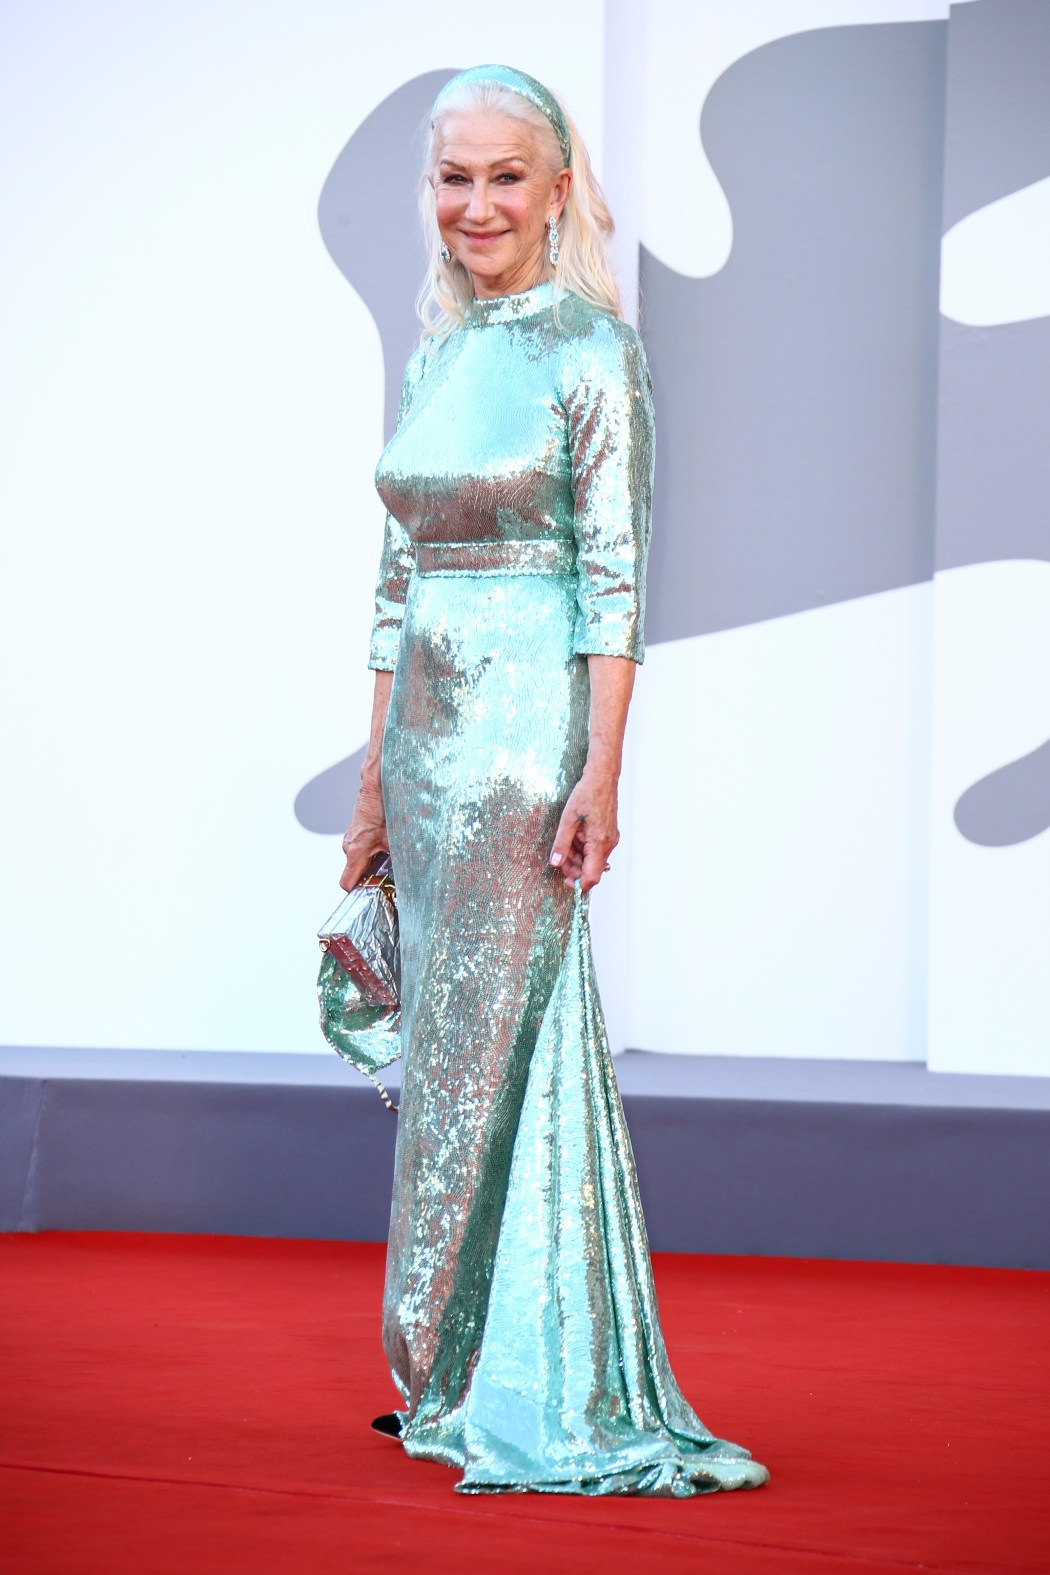 Photos from the 2021 Venice Film Festival Red Carpet